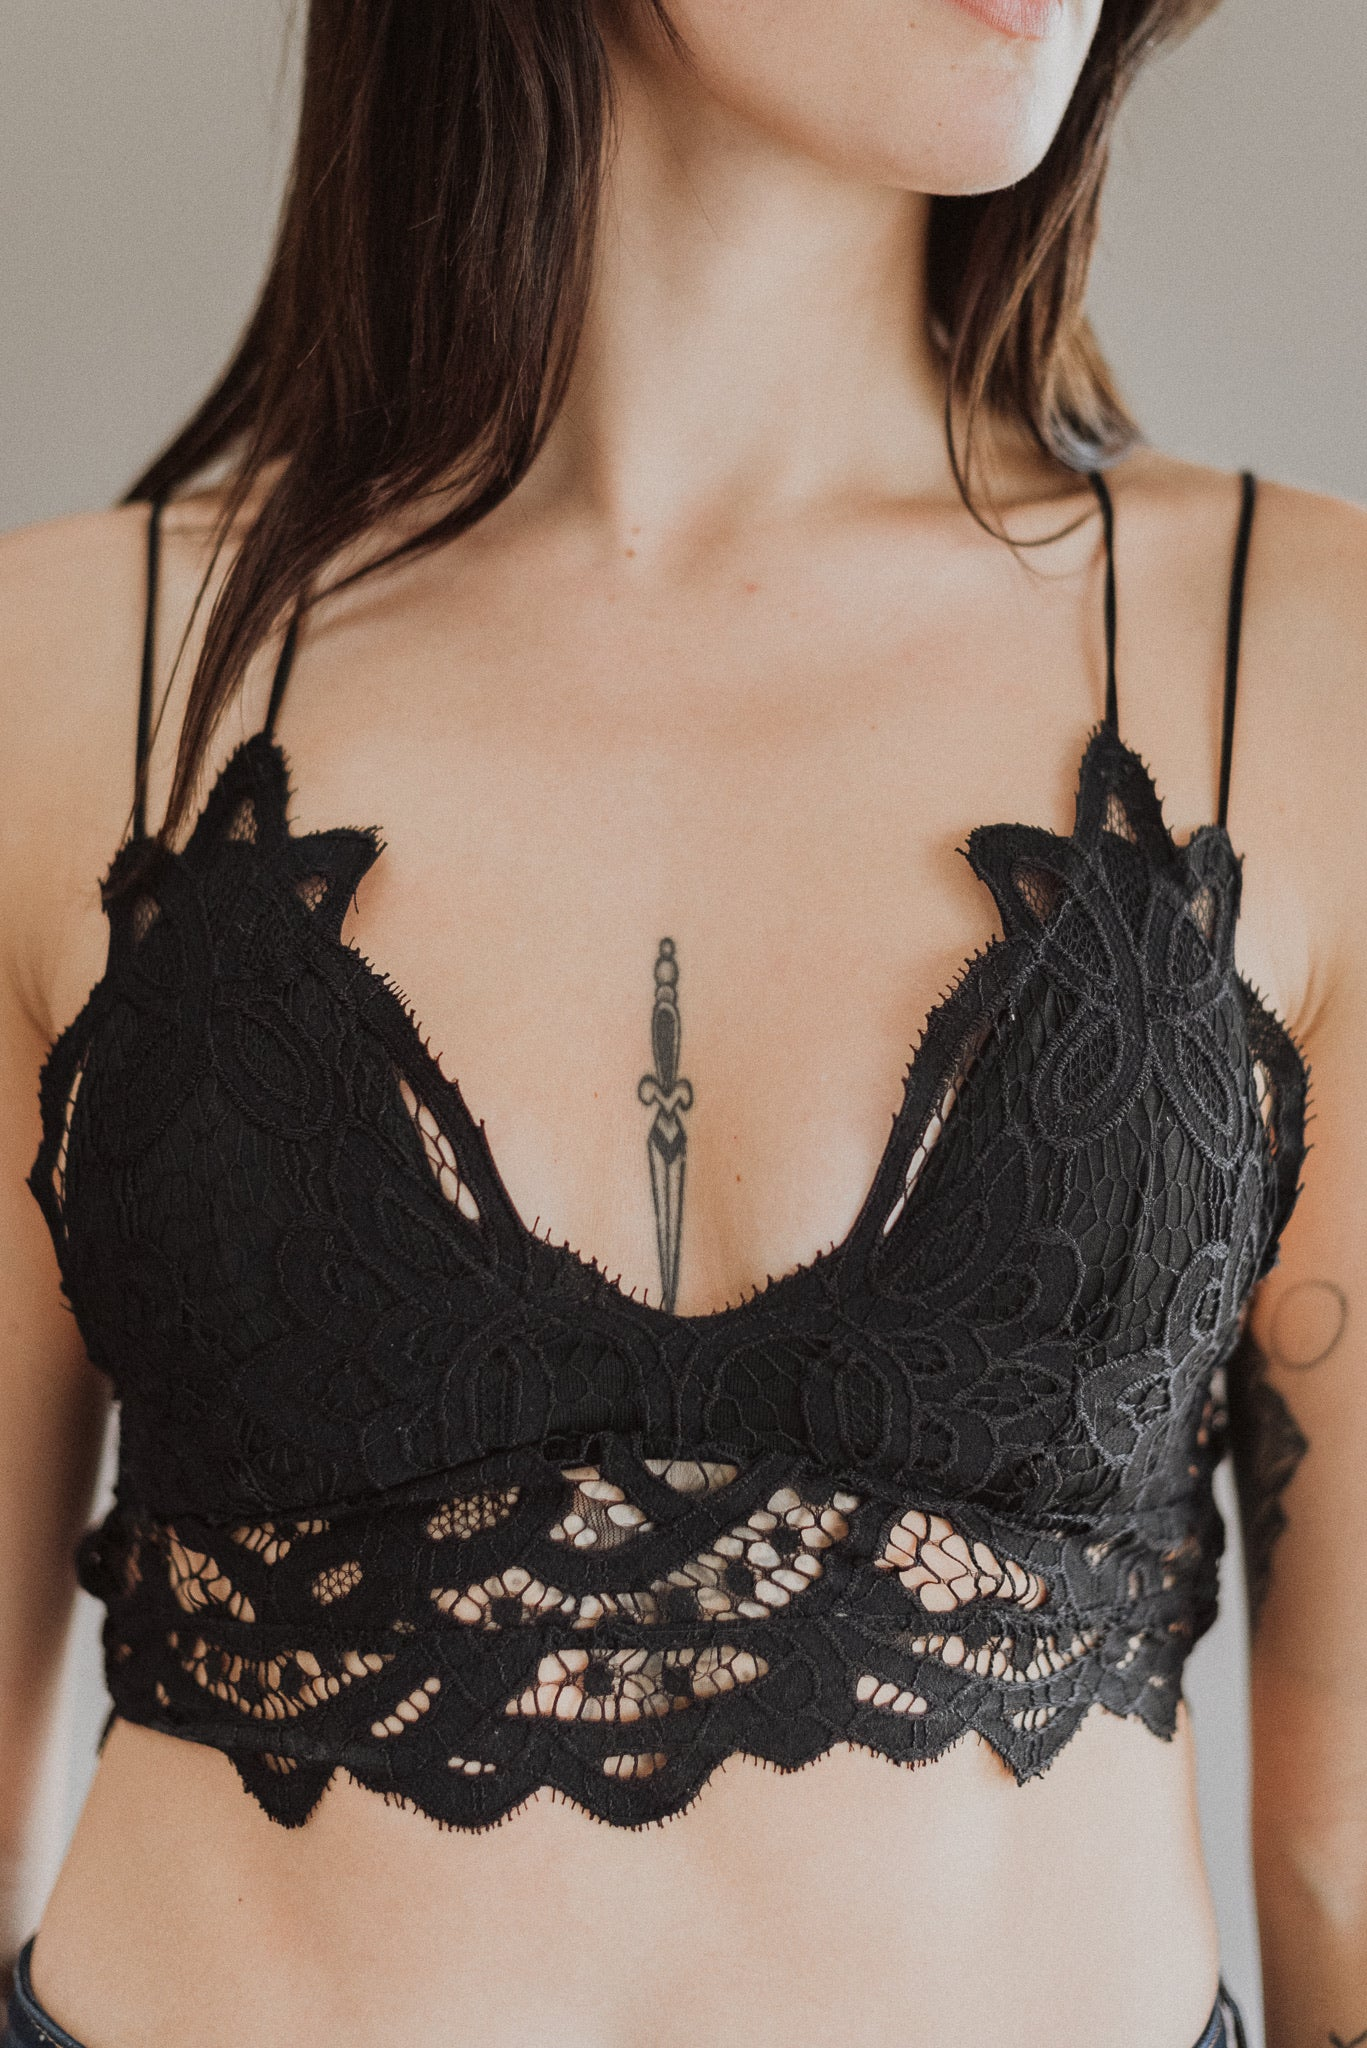 Charming in Lace Bralette in Champagne and Black